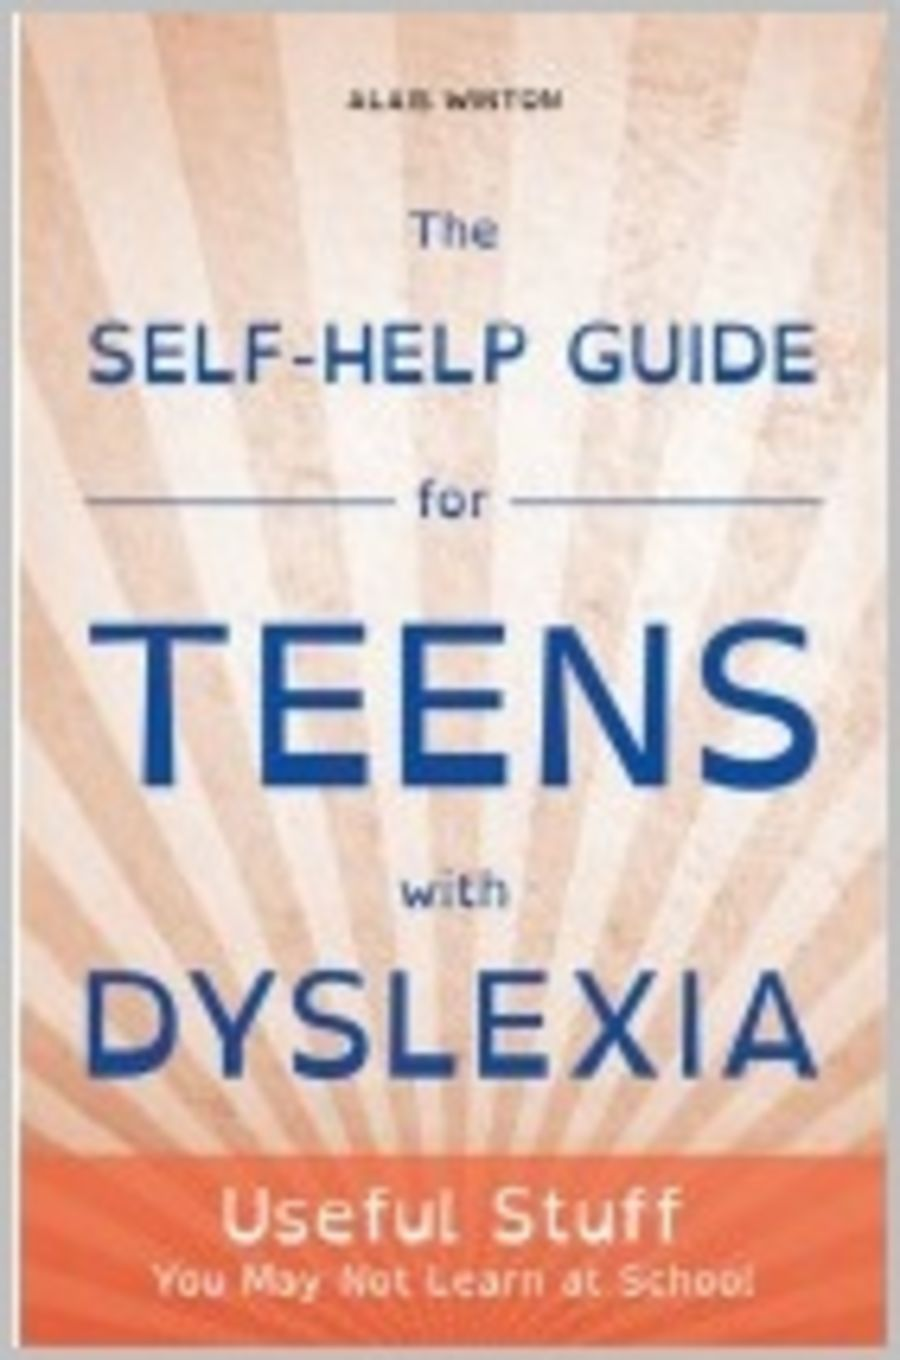 Self Help Guide for Teens with Dyslexia